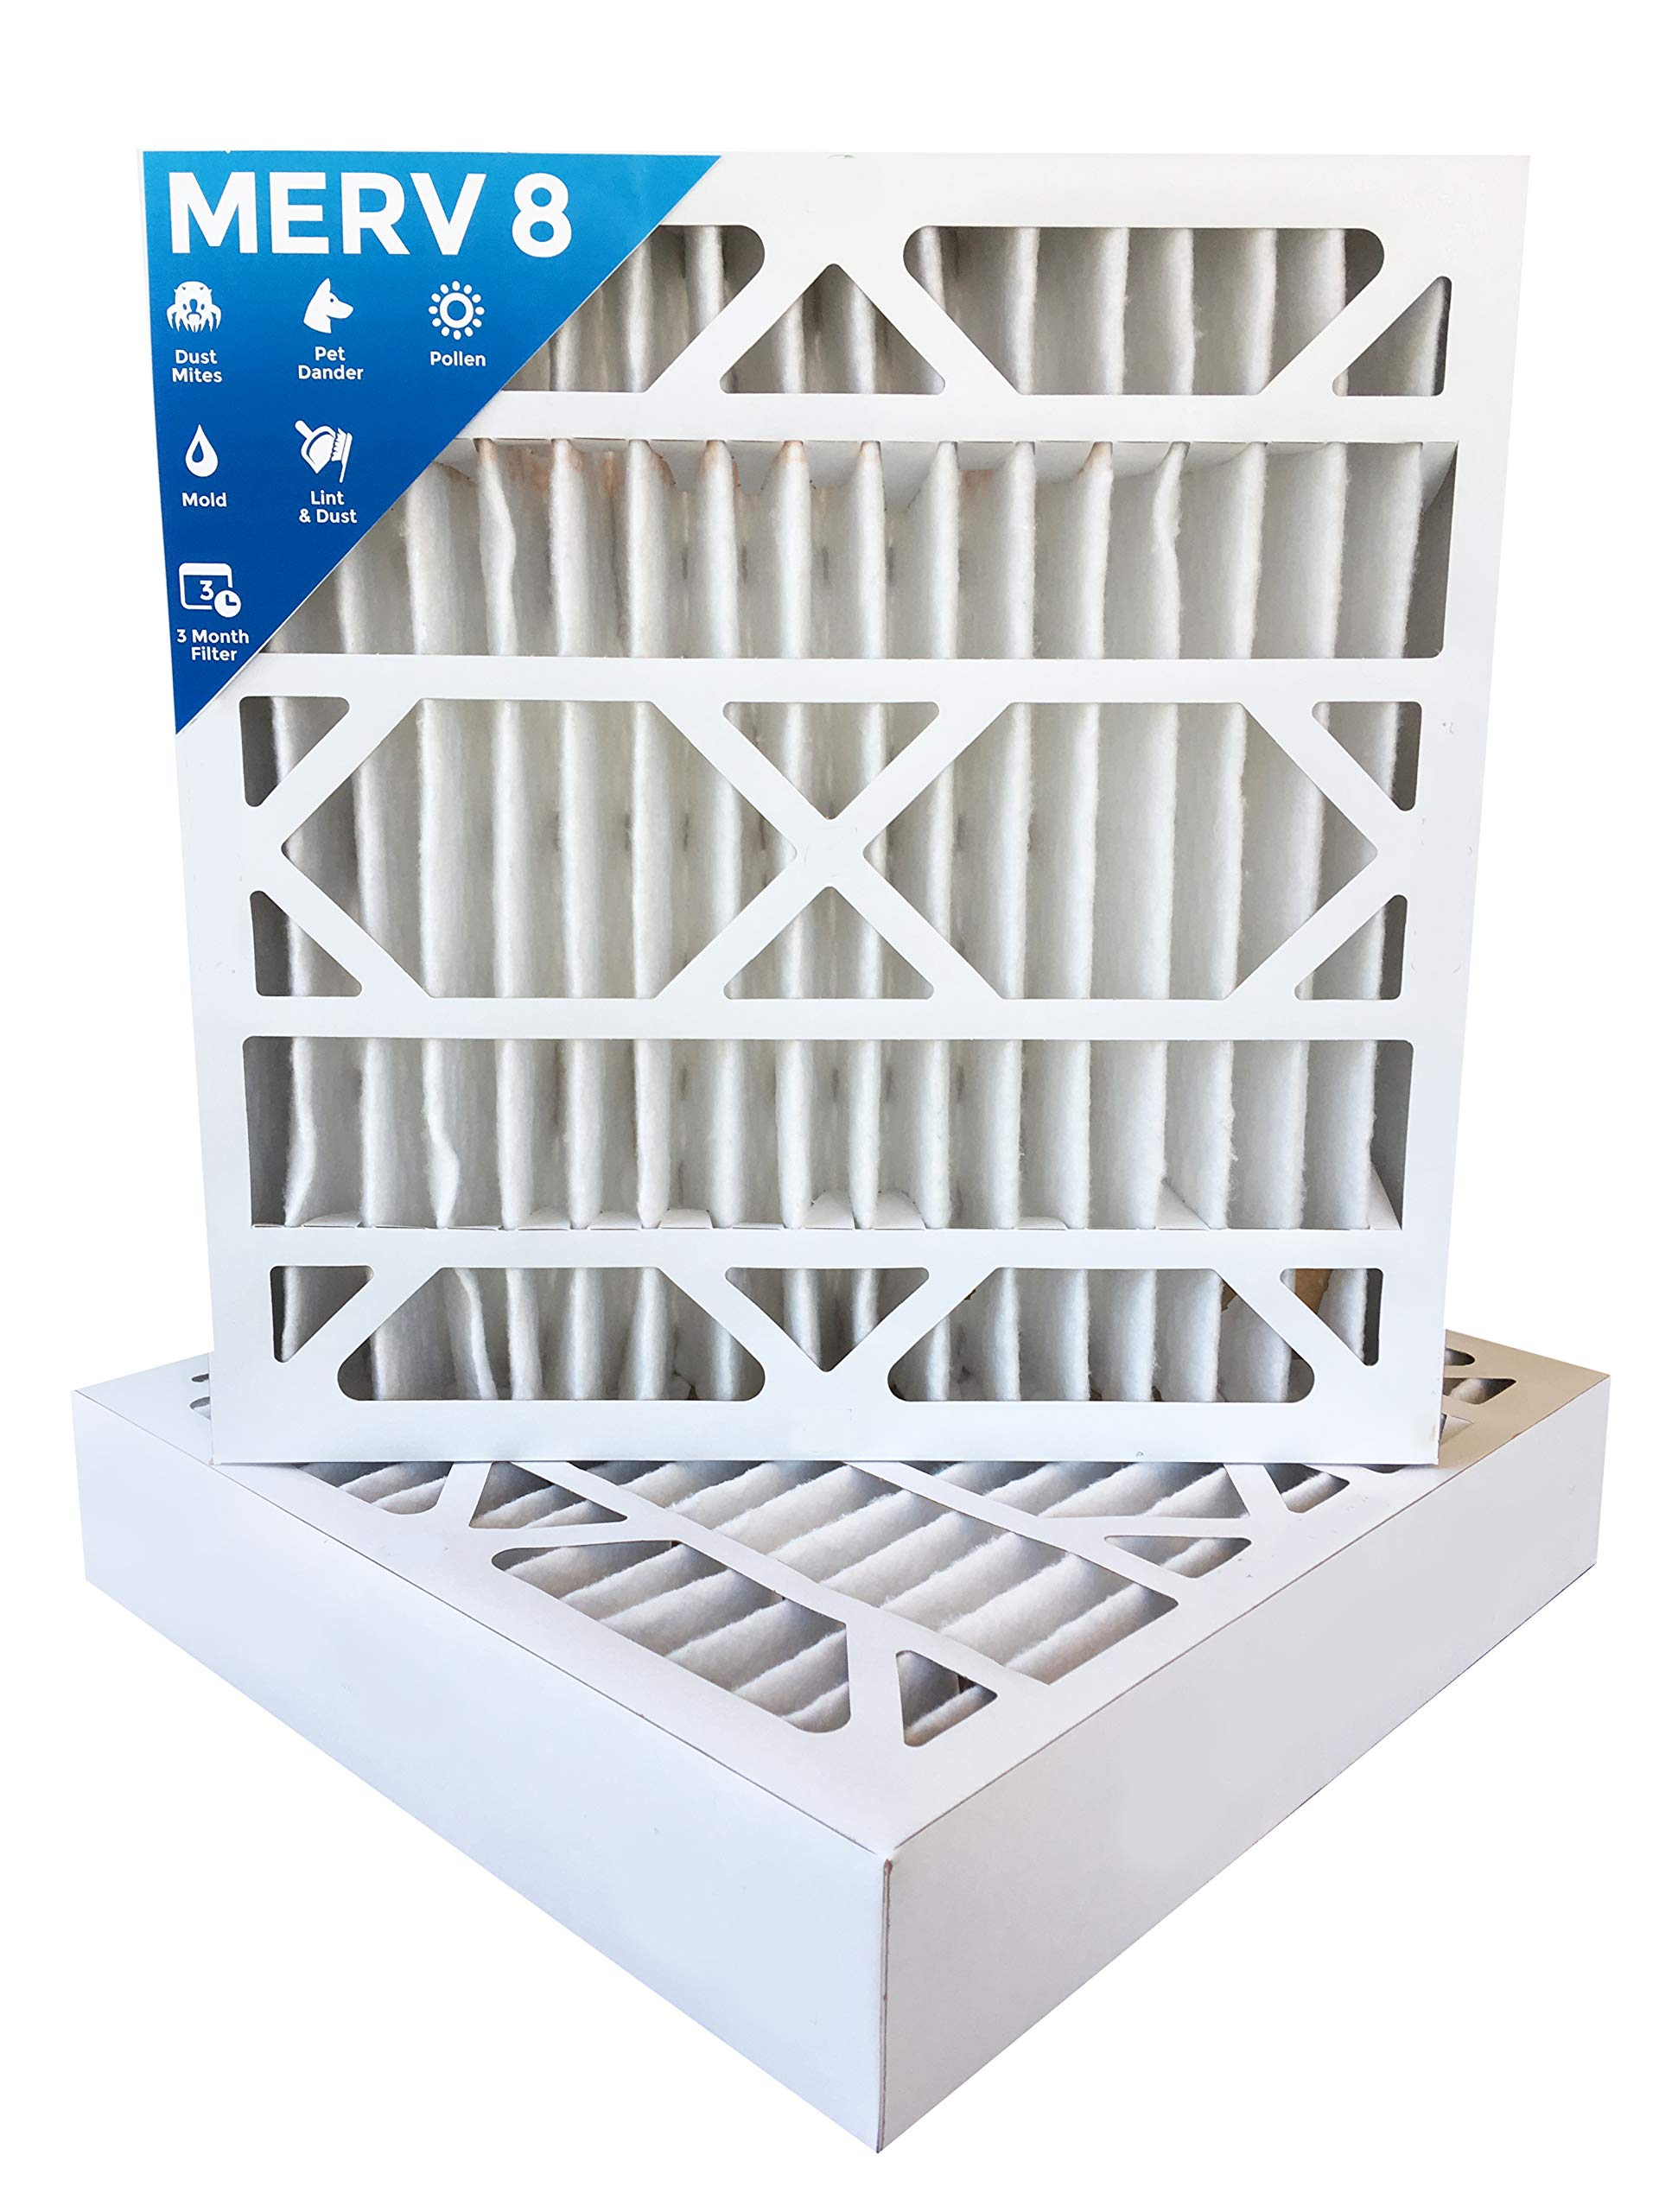 24x24x4 MERV 8 AC Furnace 4'' Inch Air Filters. Box of 4